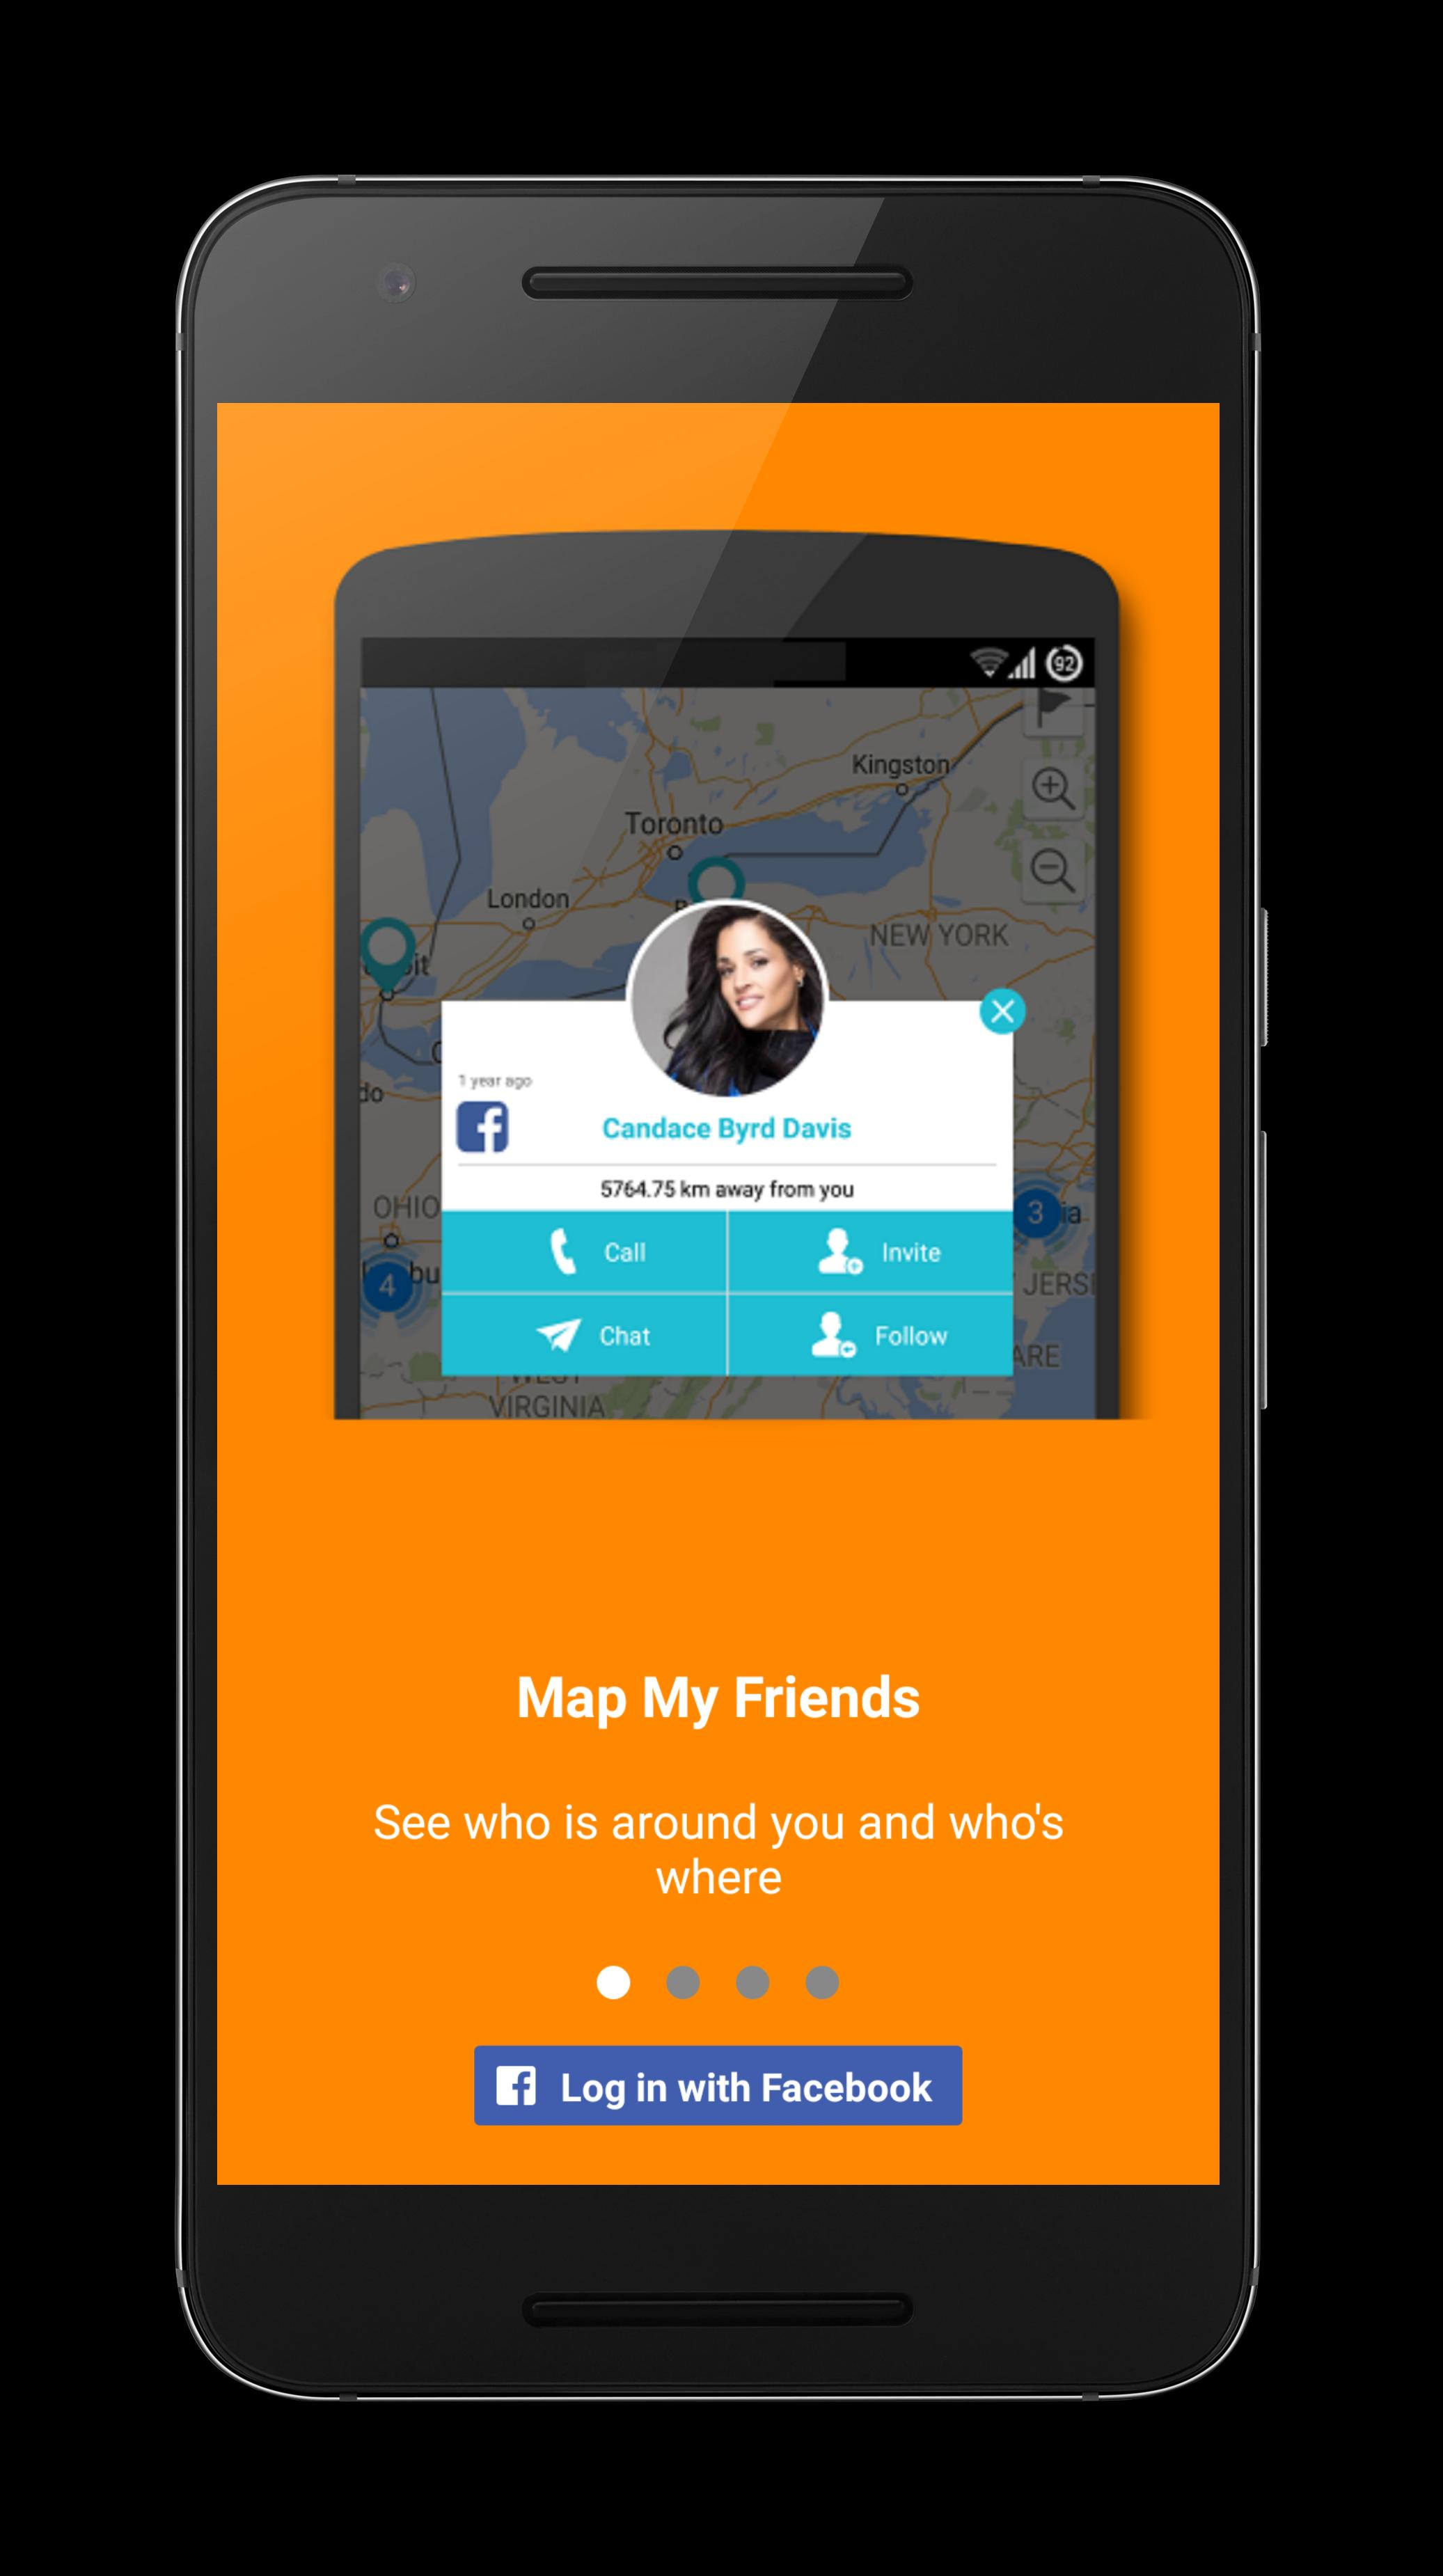 Map My Friends for Android - APK Download Map My Facebook Friends on my friends list, internet friends, who can see my friends, see all friends, not friends, top friends, code to view hidden friends, crazy friends, my friend died, emma from friends, my friends rock, my pinterest friends, add personal contacts as friends, tumblr friends, webshots goodtimes friends, my friend request, who needs friends,